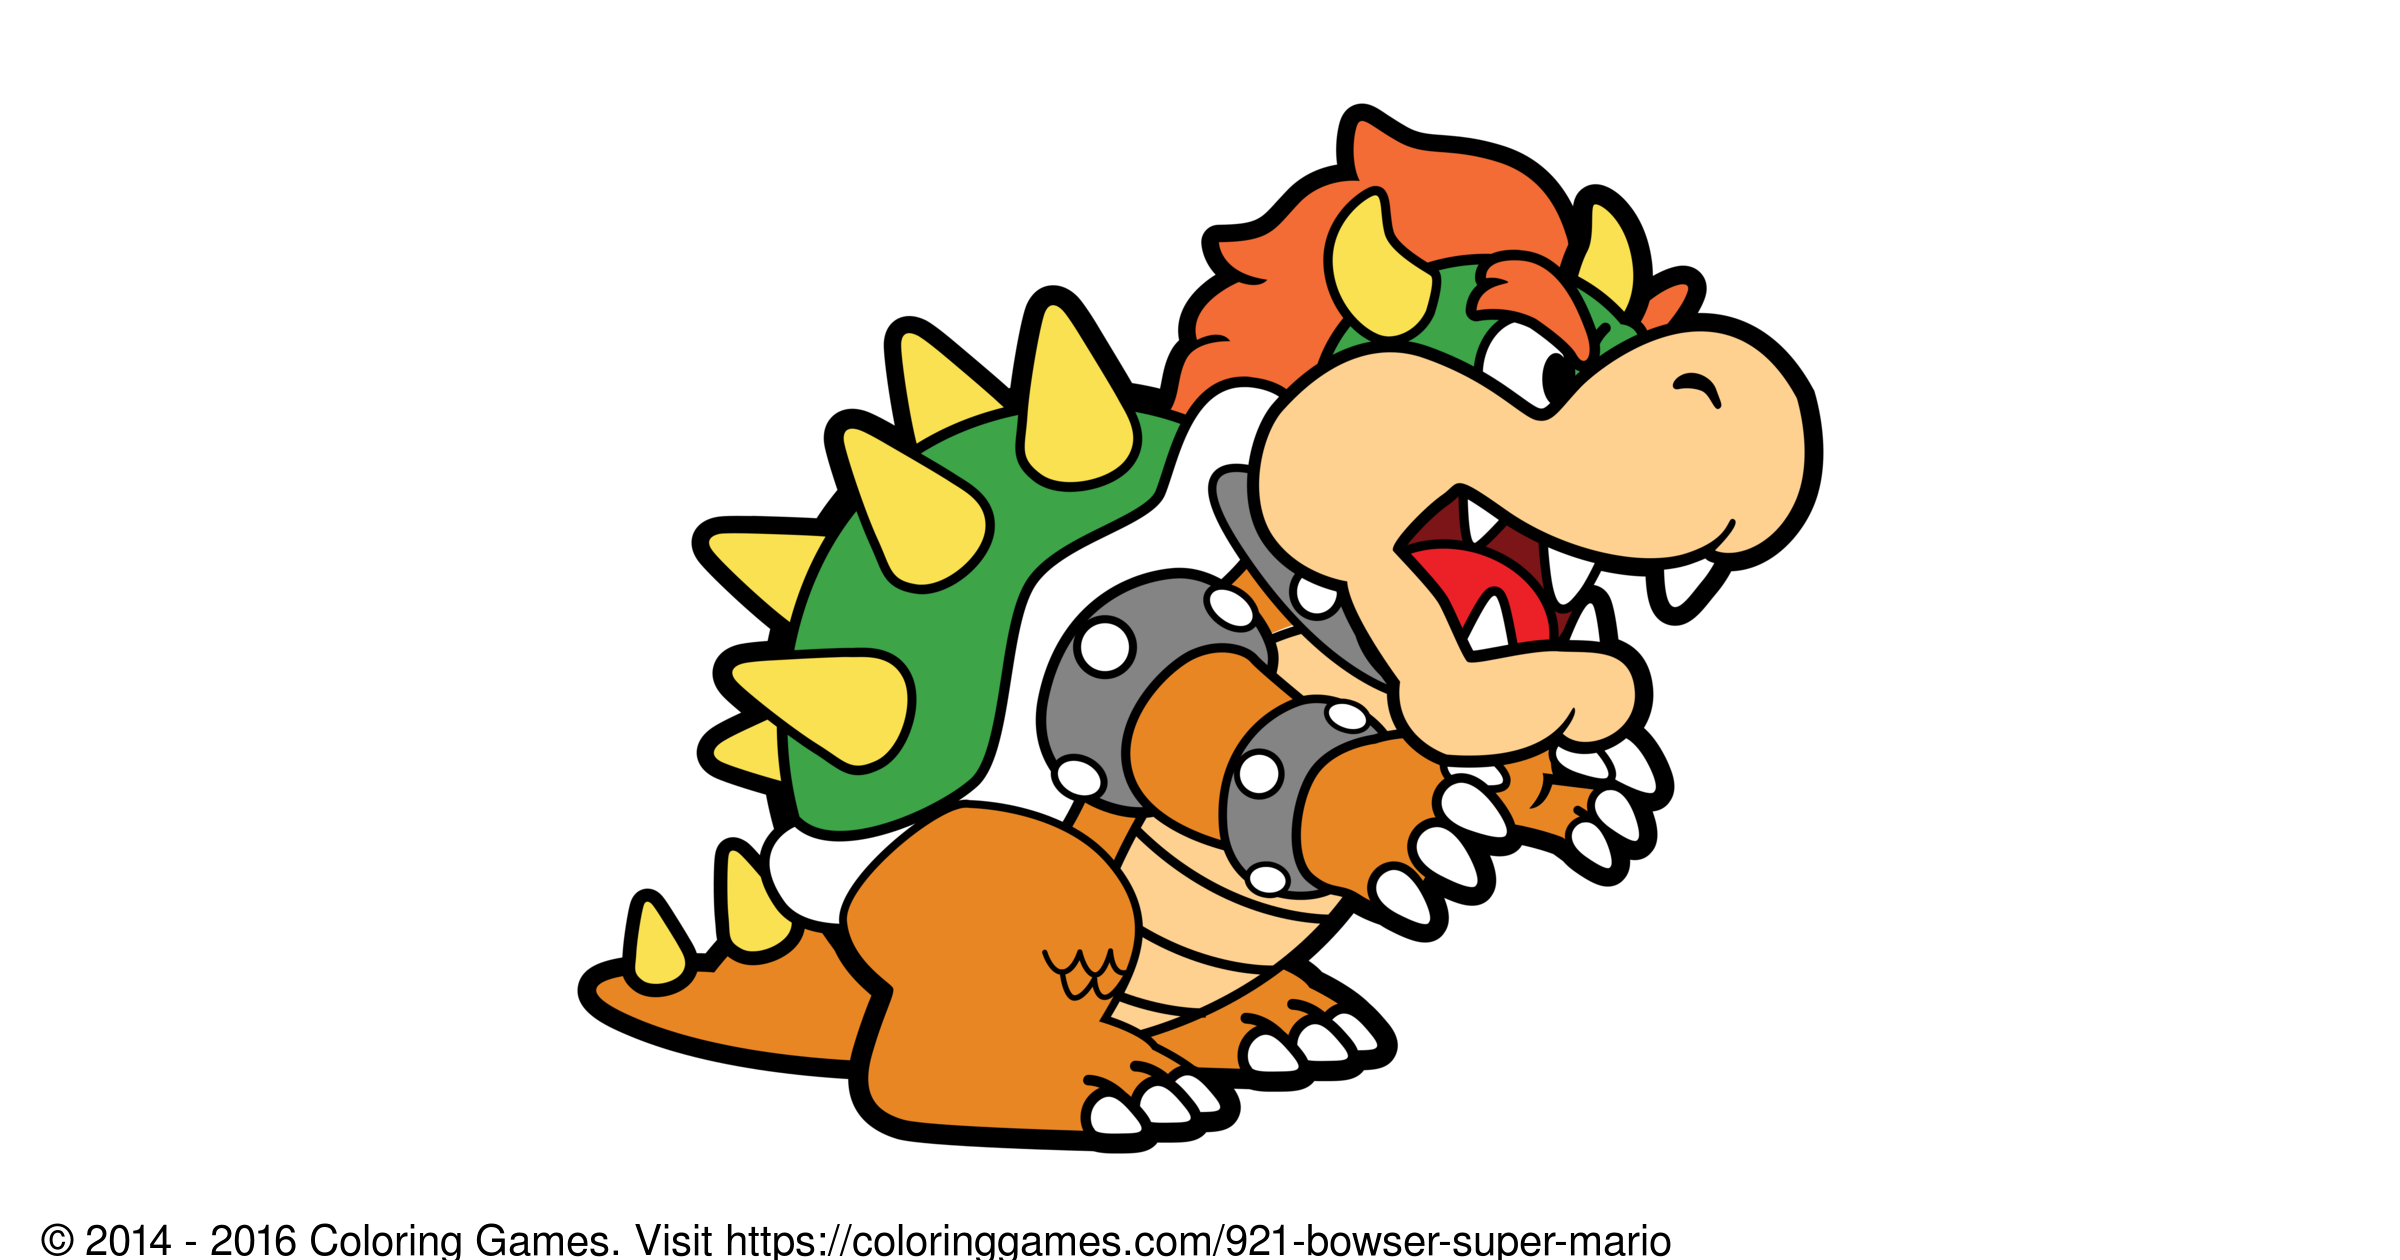 Bowser Super Mario Coloring Games and Coloring Pages